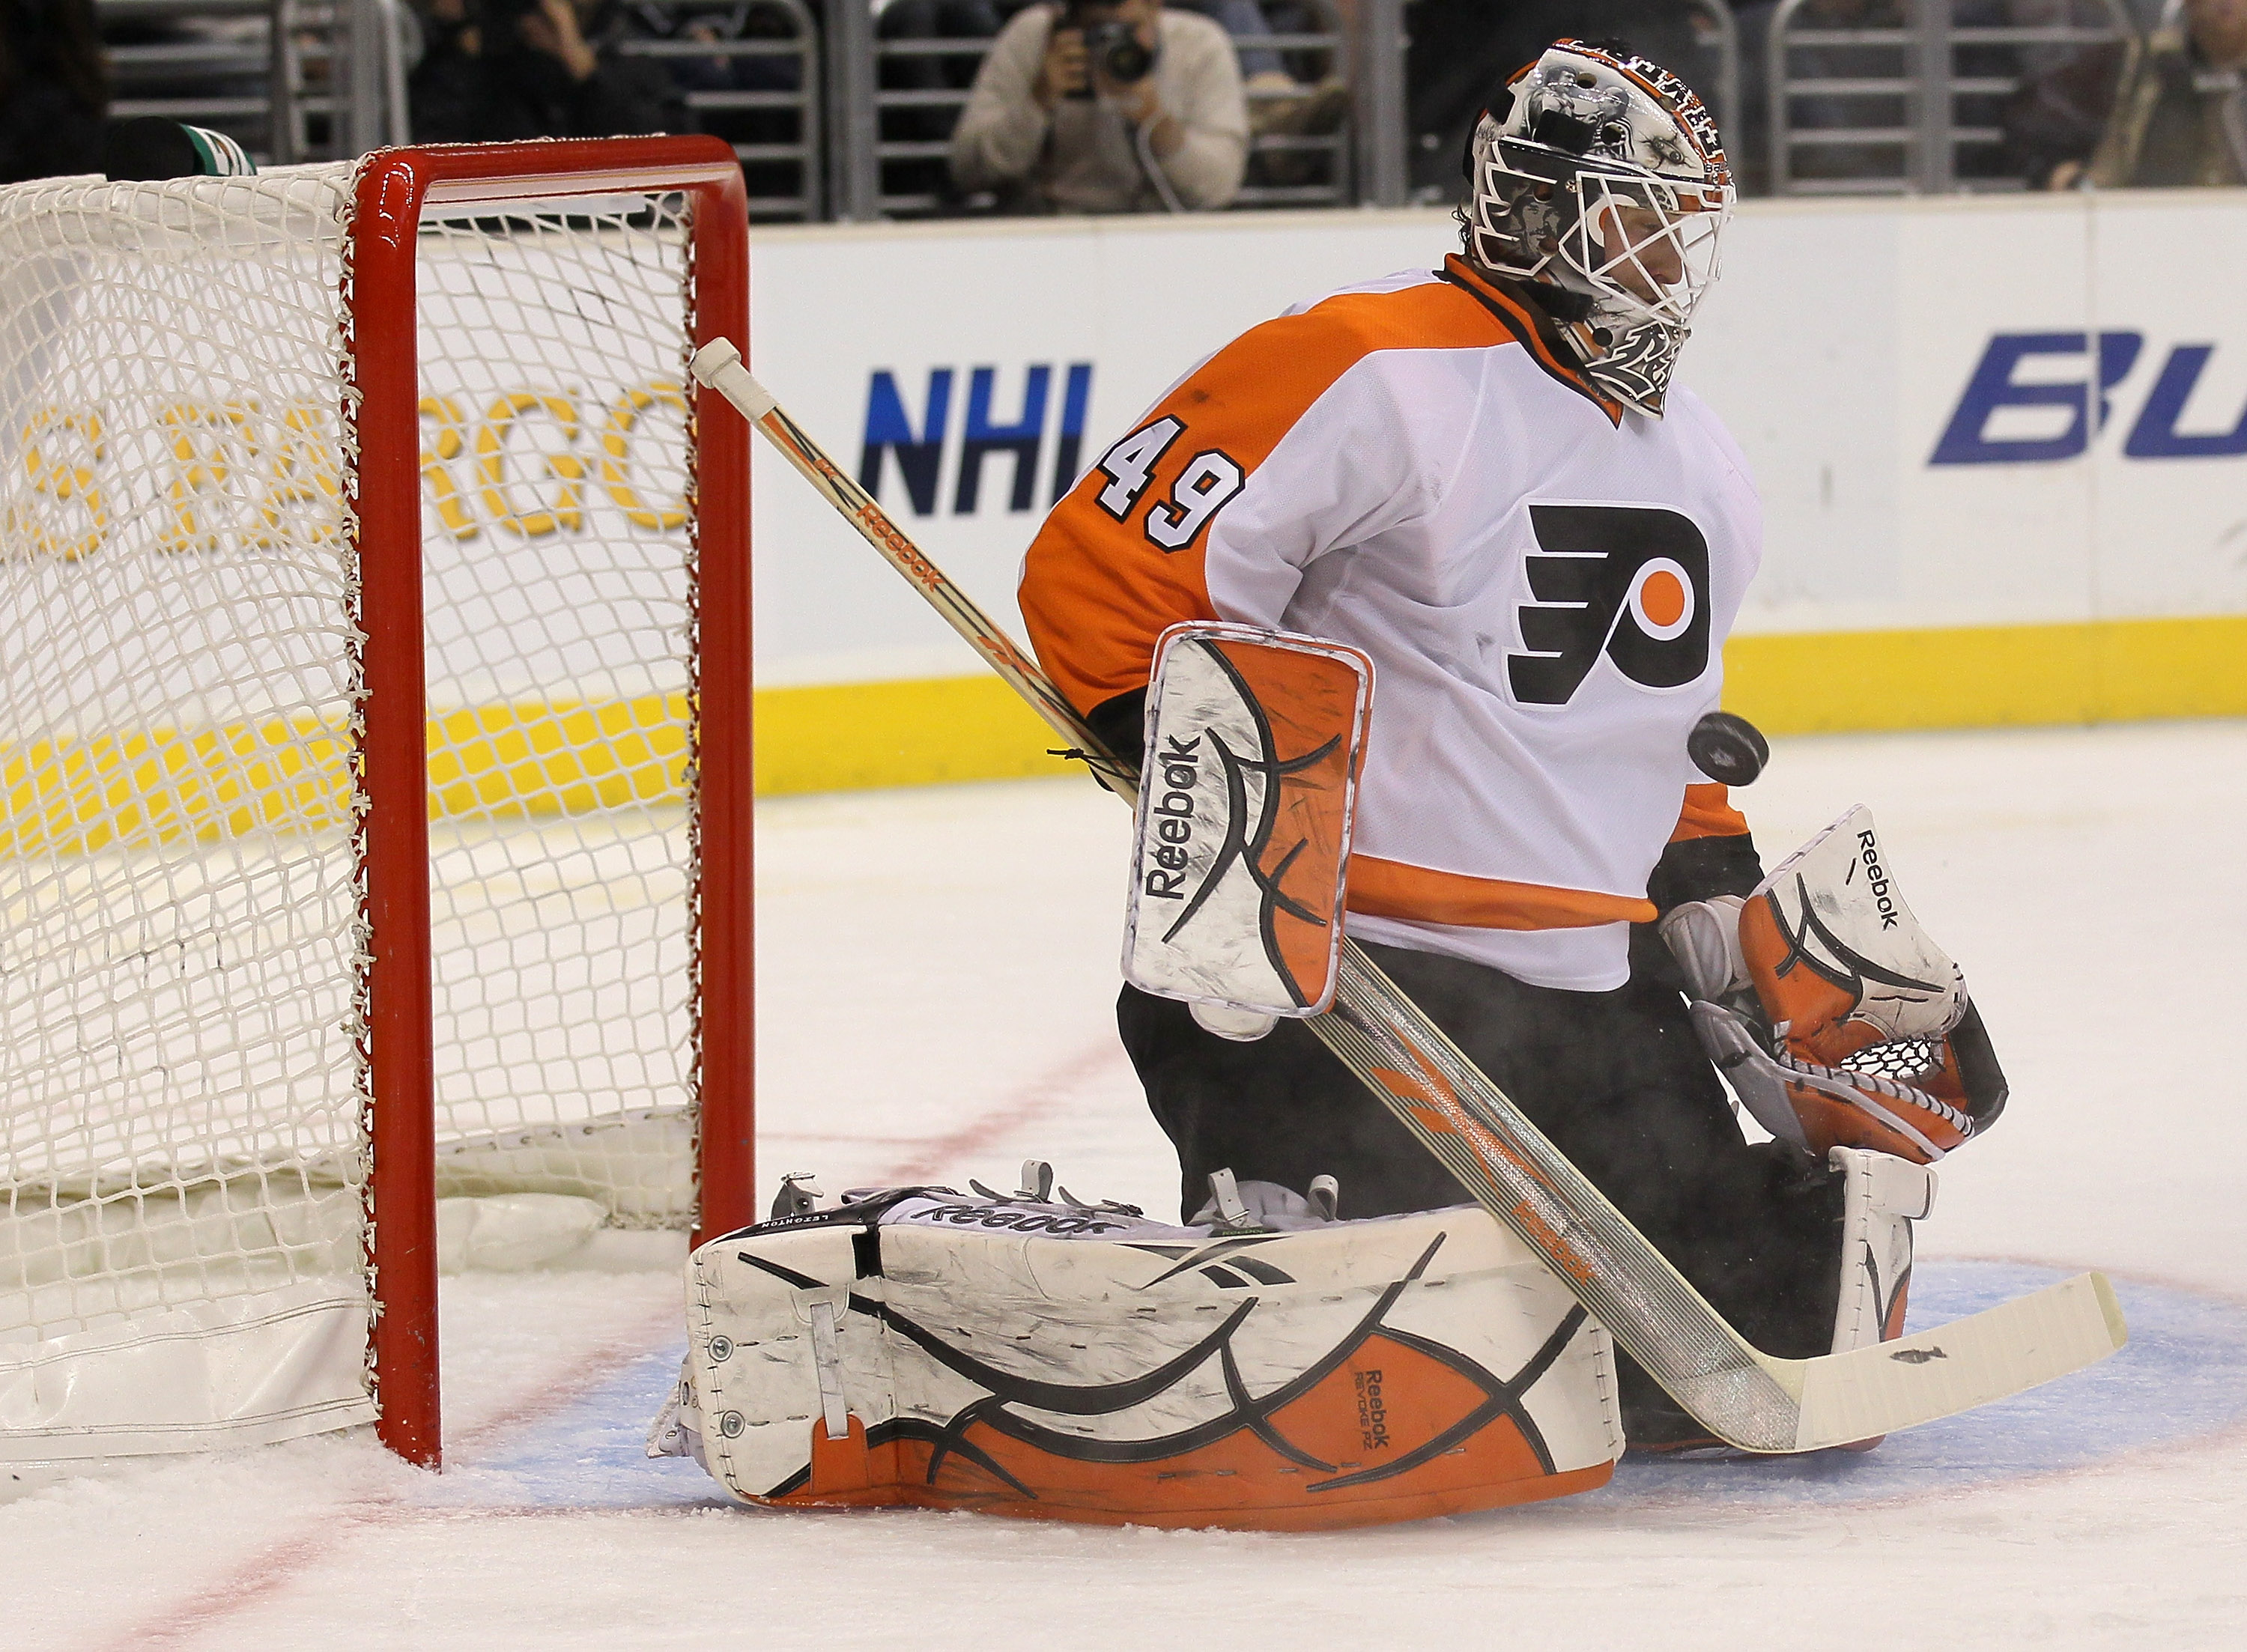 LOS ANGELES, CA - DECEMBER 30: Goaltender Michael Leighton #49 of the Philadelphia Flyers makes a save against the Los Angeles Kings at Staples Center on December 30, 2010 in Los Angeles, California.   (Photo by Stephen Dunn/Getty Images)